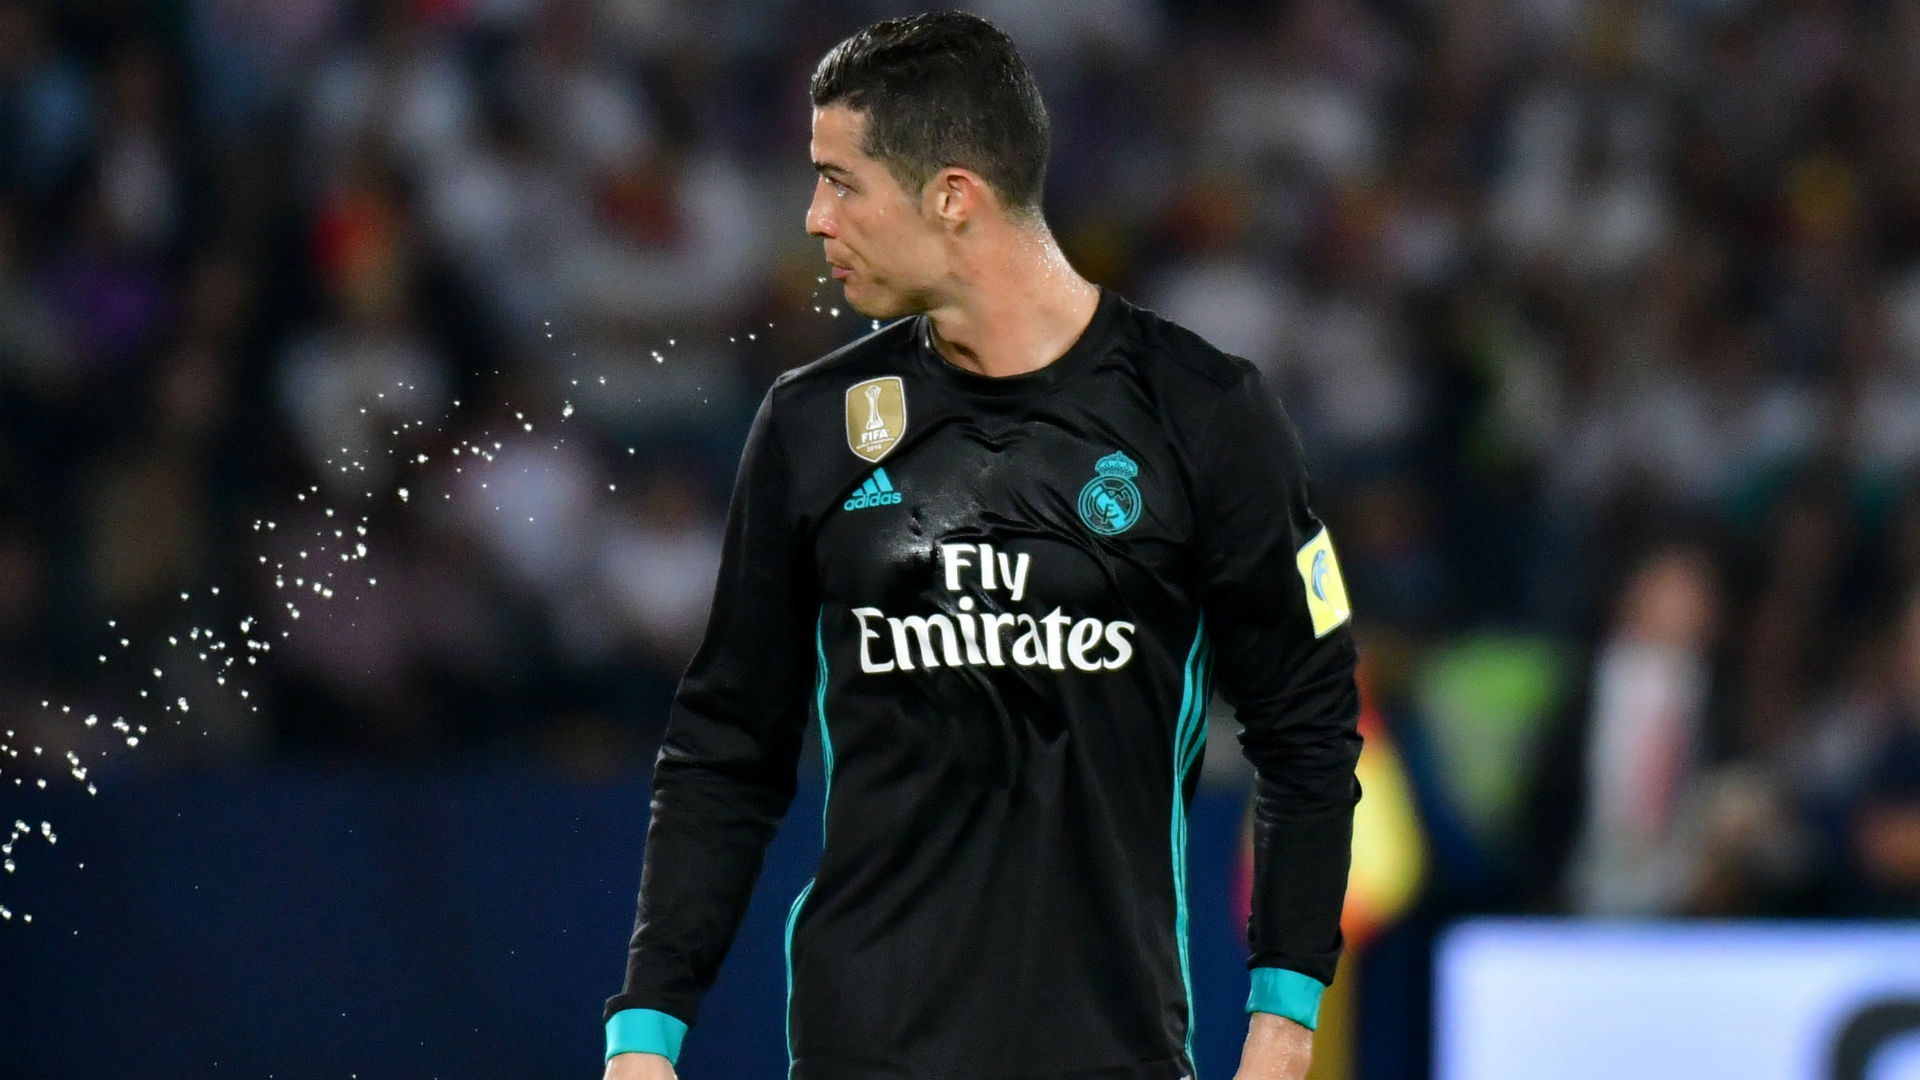 Real Madrid January transfer news LIVE: Los Blancos still chasing